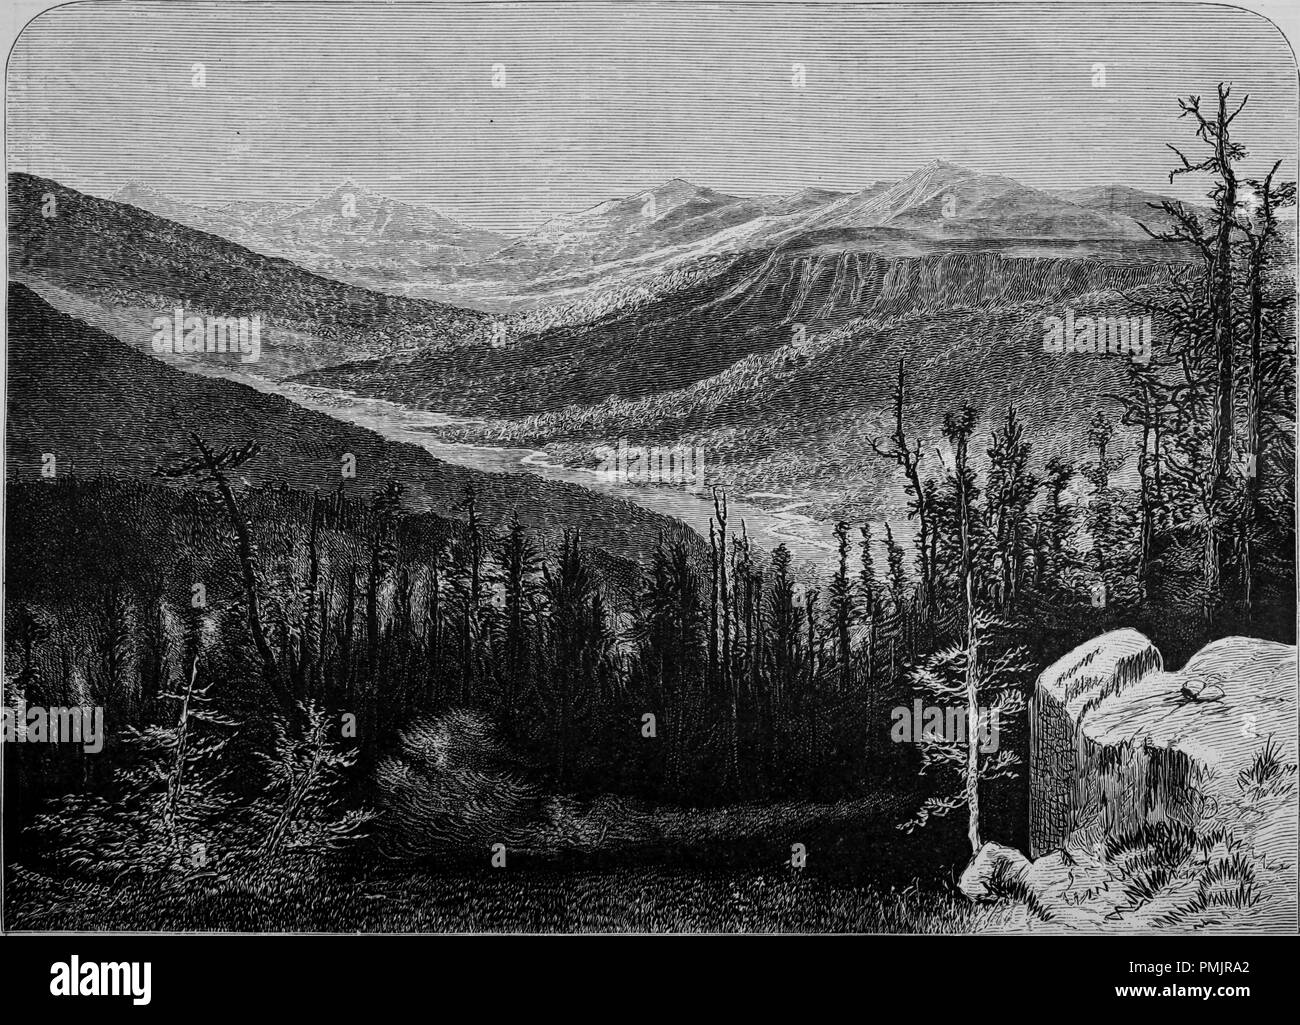 Engraving of Gilbert's Peak in the Uinta Mountains, from the book 'The Pacific tourist', 1877. Courtesy Internet Archive. () - Stock Image